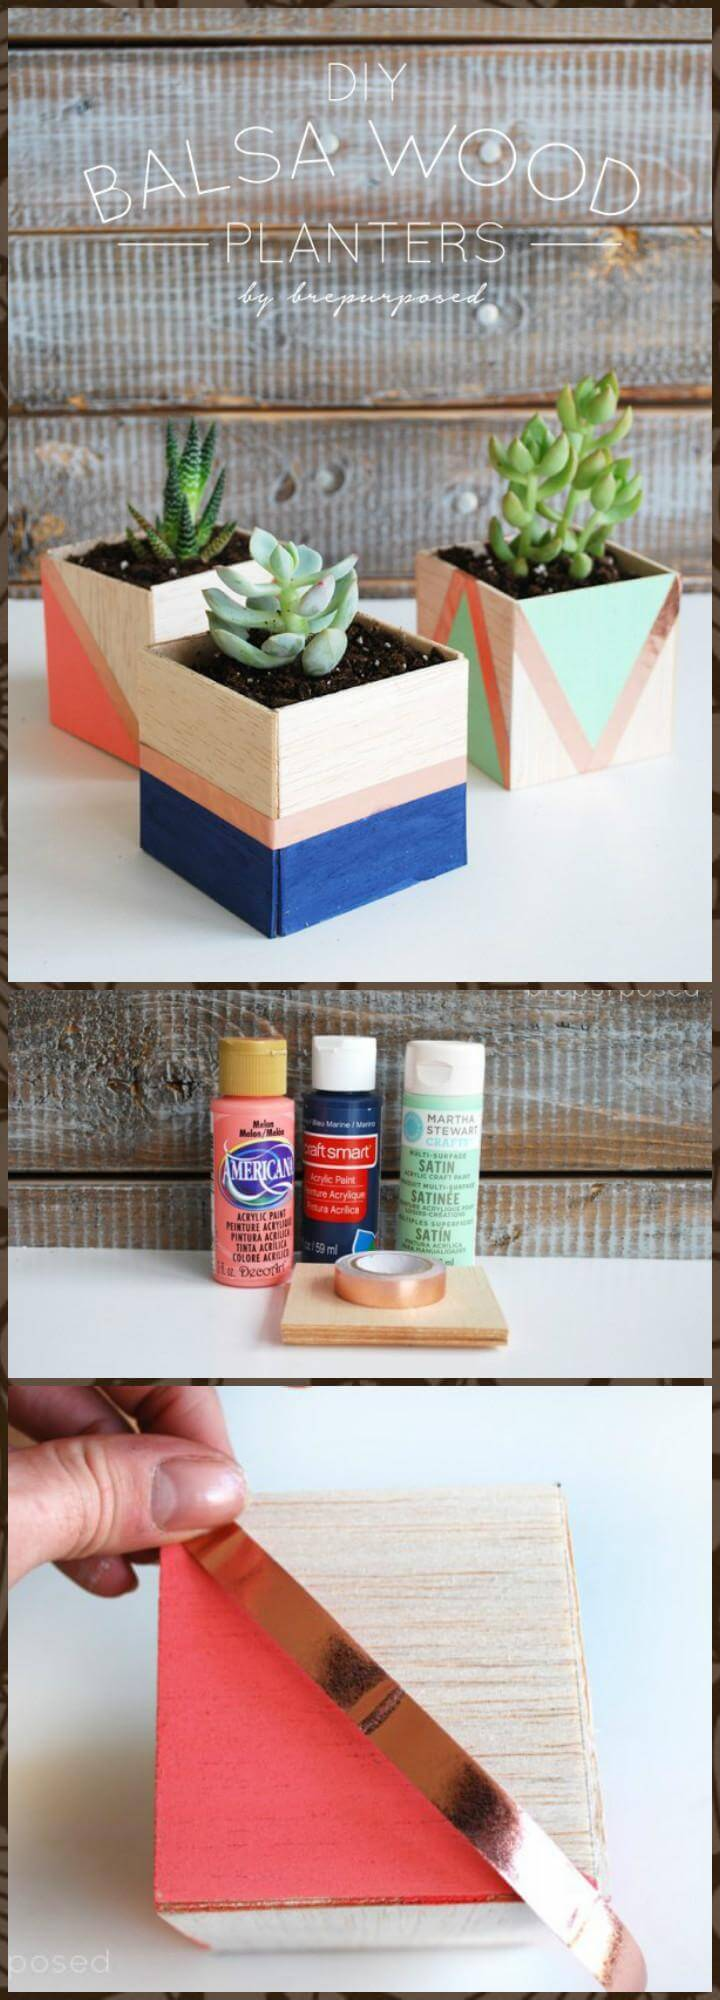 gorgeous DIY balsa wood planters for Mother's Day